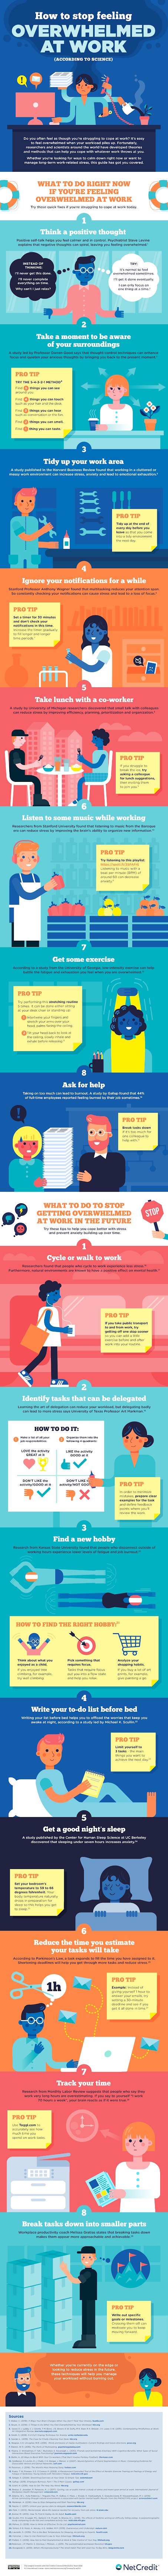 How to Stop Feeling Overwhelmed at Work #infographic